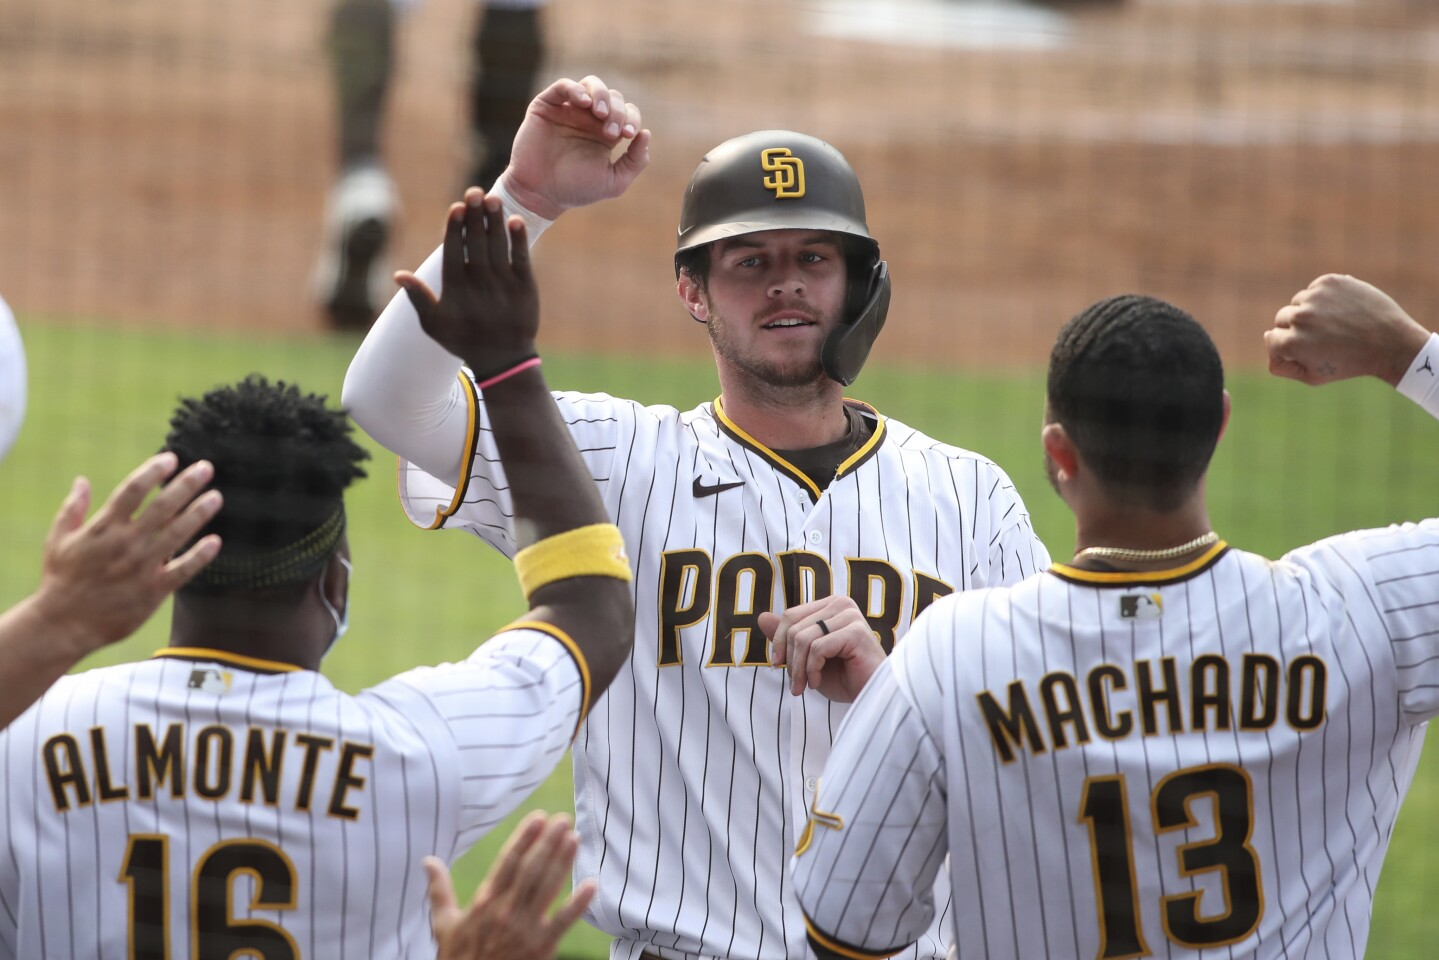 San Diego Padres Wil Myers is congratulated by teammates after hitting a solo home run against the San Francisco Giants' in the second inning of a baseball game Sunday, Sept. 13, 2020, in San Diego. (AP Photo/Derrick Tuskan)